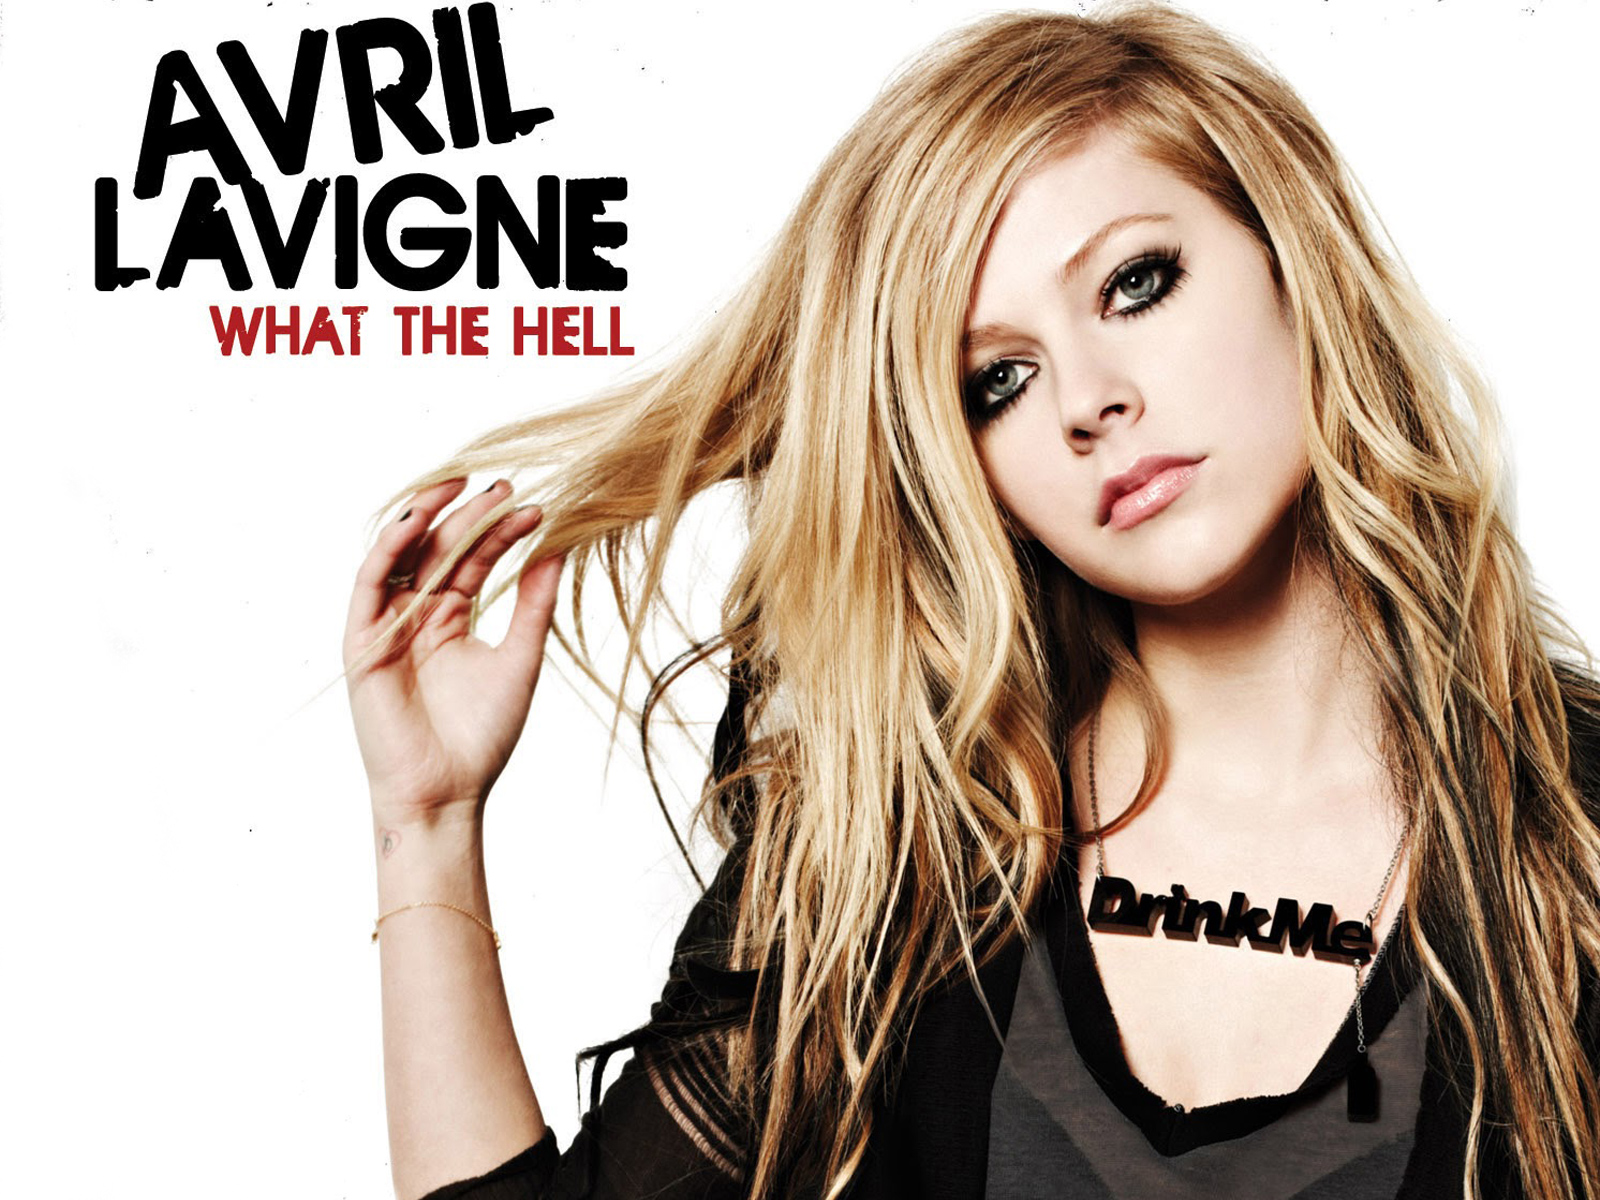 click to free download the wallpaper--Free Download TV & Movies Post - Avril Lavigne Post in Pixel of 1600x1200, Girl in Peaceful Facial Expression, Impressive Look 1600X1200 free wallpaper download